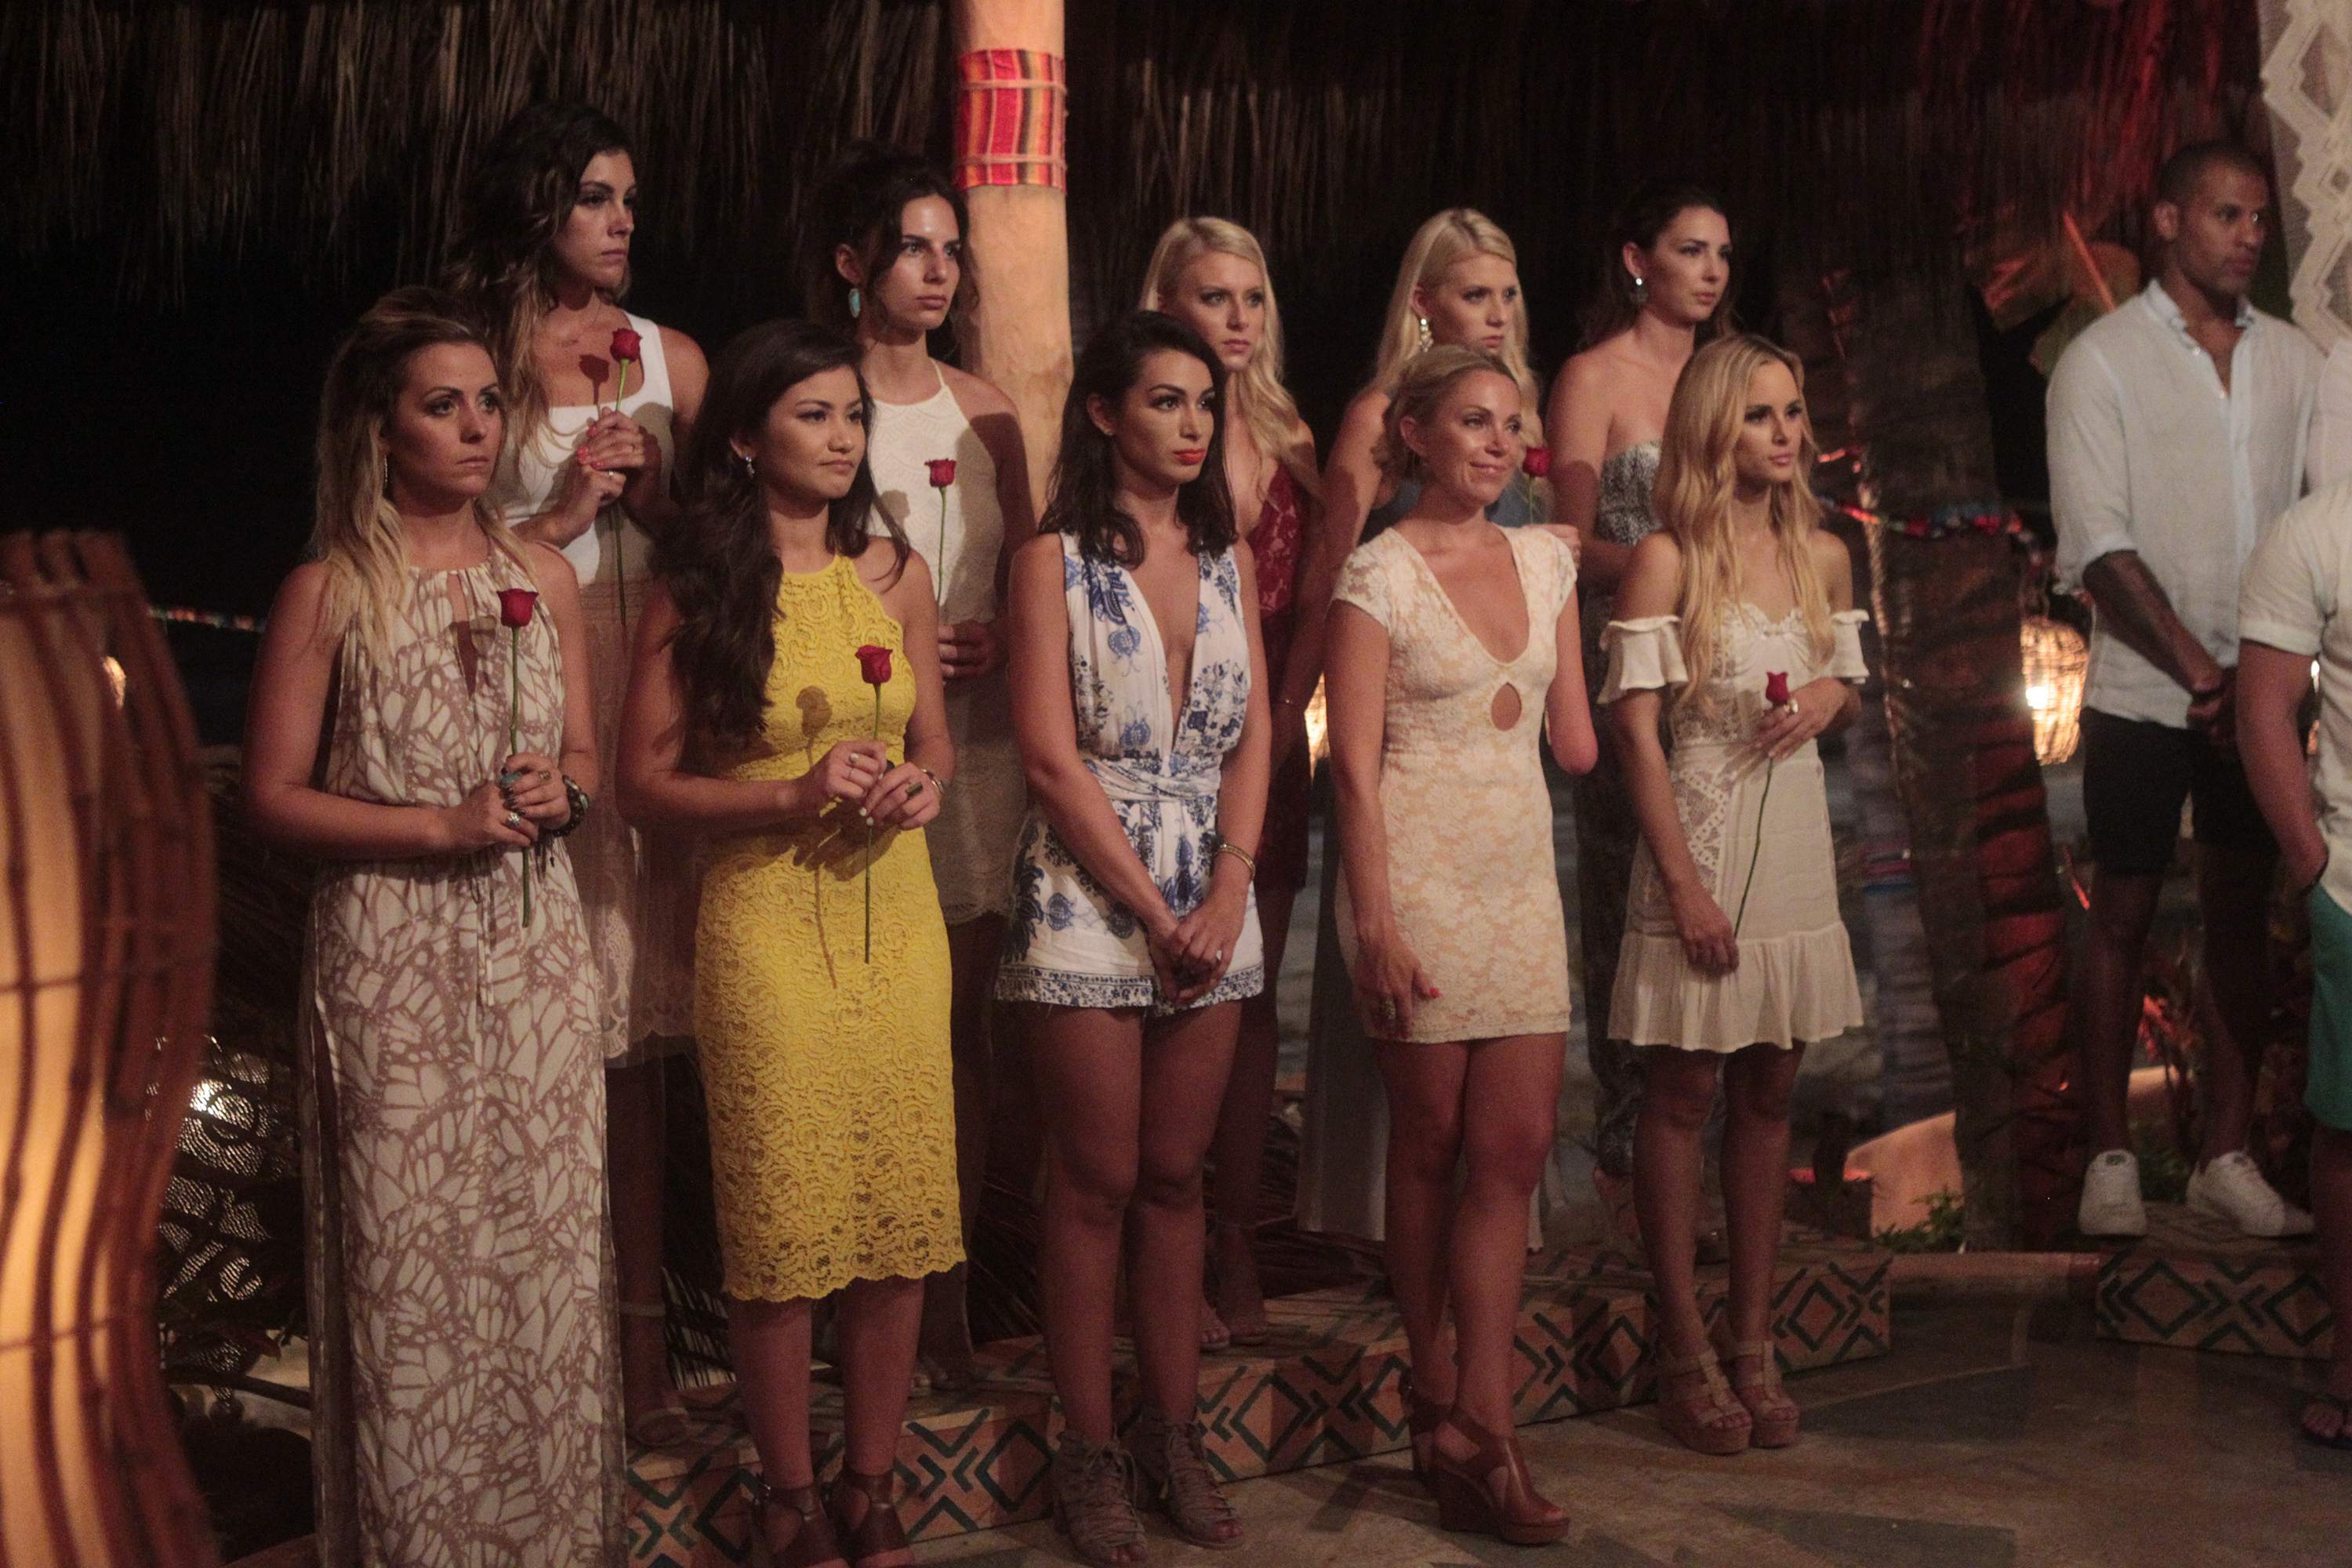 "BACHELOR IN PARADISE - ""Episode 303B"" - In ""Episode 303B,"" which airs TUESDAY, AUGUST 16 (8:00-9:00 p.m. EDT), the story picks up as our remaining cast members are shocked to see that an infamous drama queen has arrived in Paradise! This determined bachelorette is ready to find love and put the drama, her ex and the tears behind her for good! But the best laid plans often go awry, and, as she walks into paradise, she is confronted with her worst nightmare: her ex has met someone else, and she will have to watch from the sidelines as he finds love with another woman. (ABC/Rick Rowell) CARLY WADDELL, LACE MORRIS, CAILA QUINN, ISABEL GOODKIND, ASHLEY IACONETTI, HALEY FERGUSON, SARAH HERRON, EMILY FERGUSON, JENNIFER SAVIANO, AMANDA STANTON, GRANT KEMP"